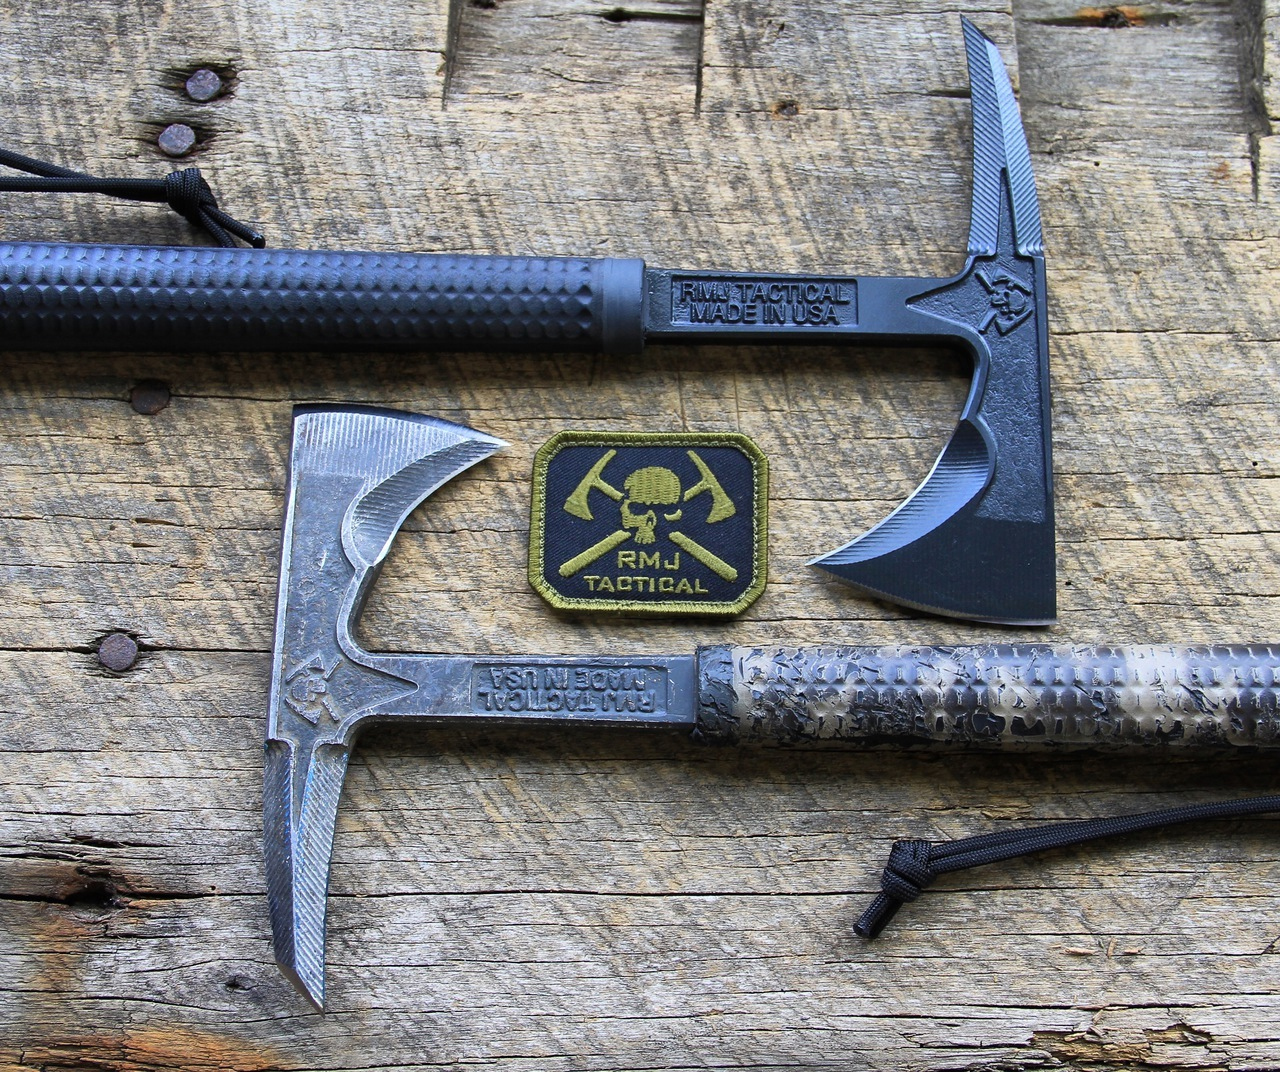 Buy RMJ Tactical Tomahawks at KnifeCenter